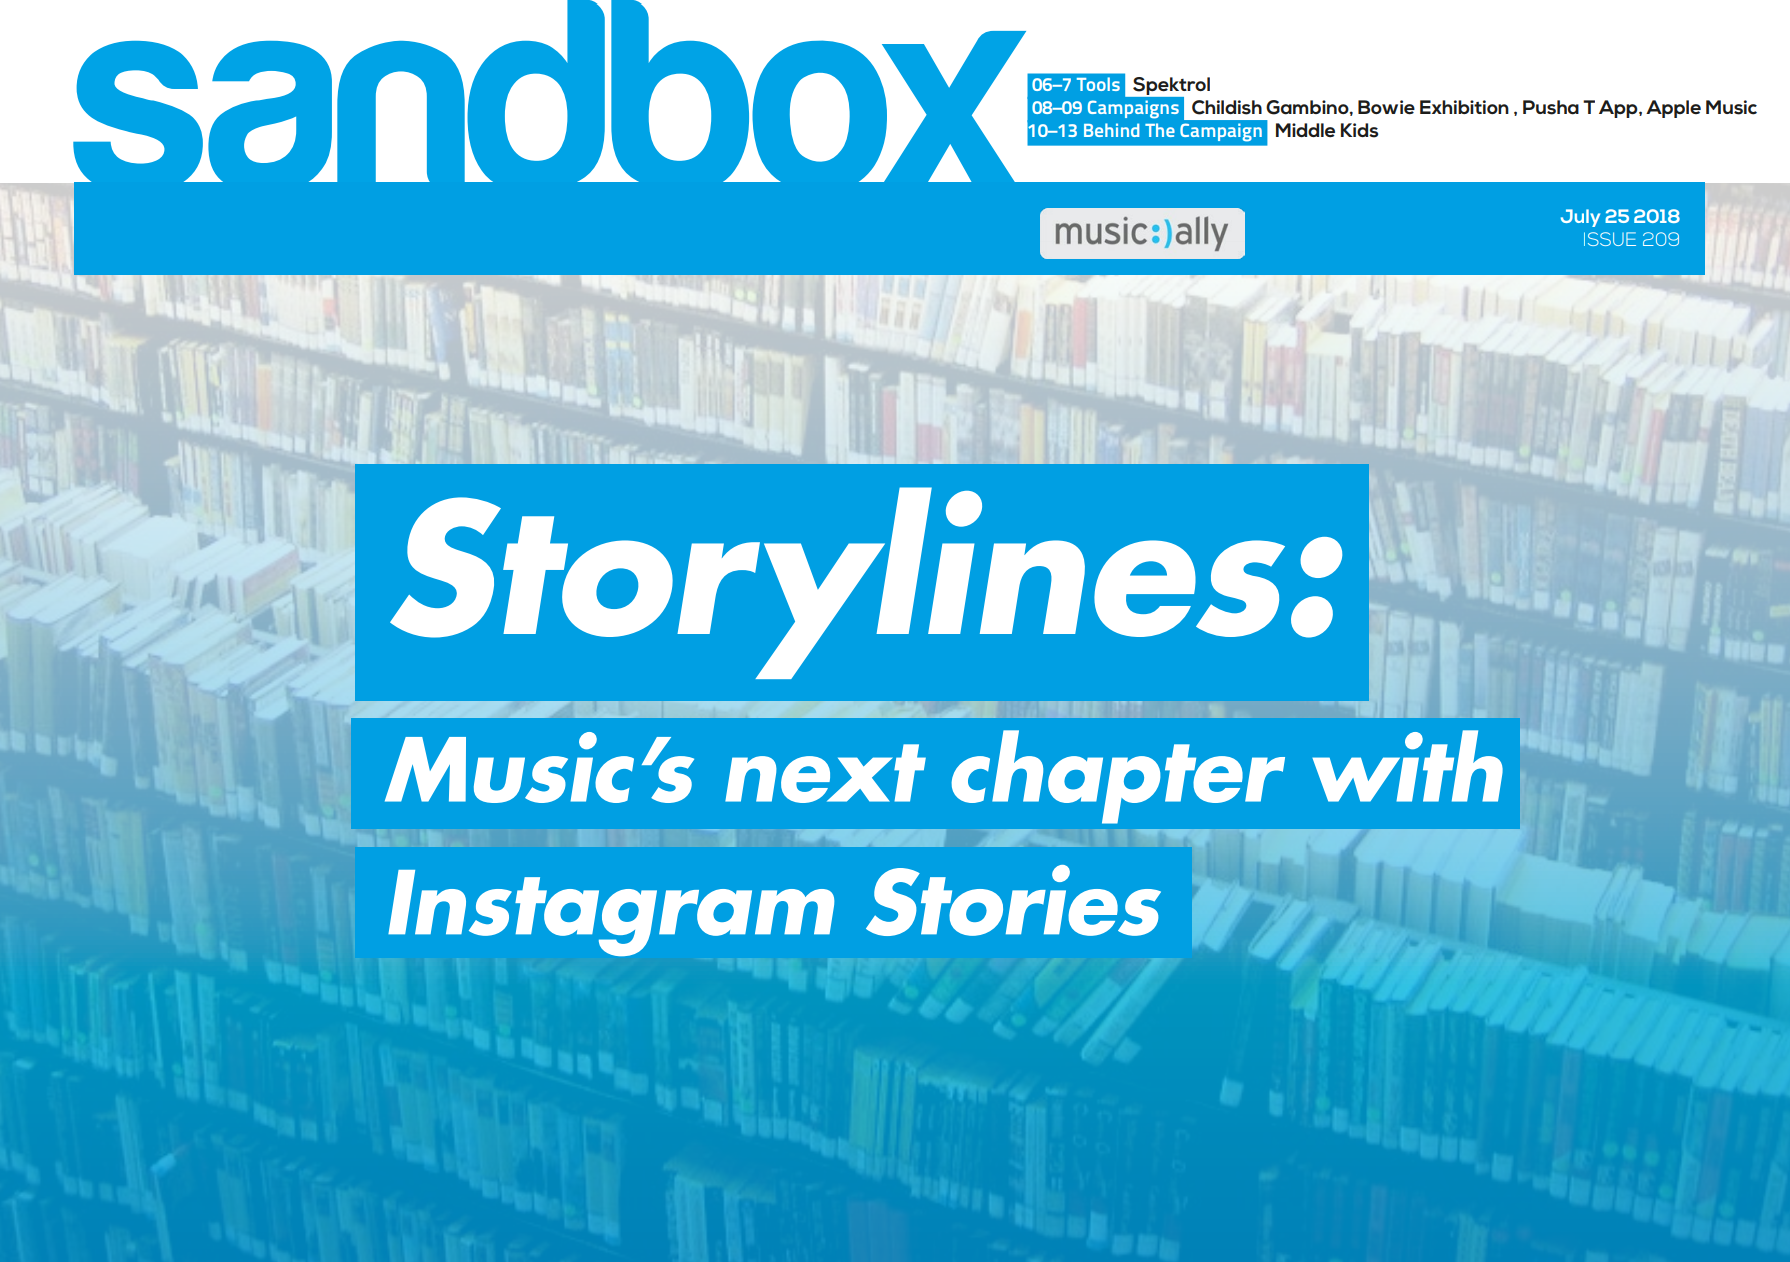 Sandbox Issue 209: Storylines, Music's next chapter with